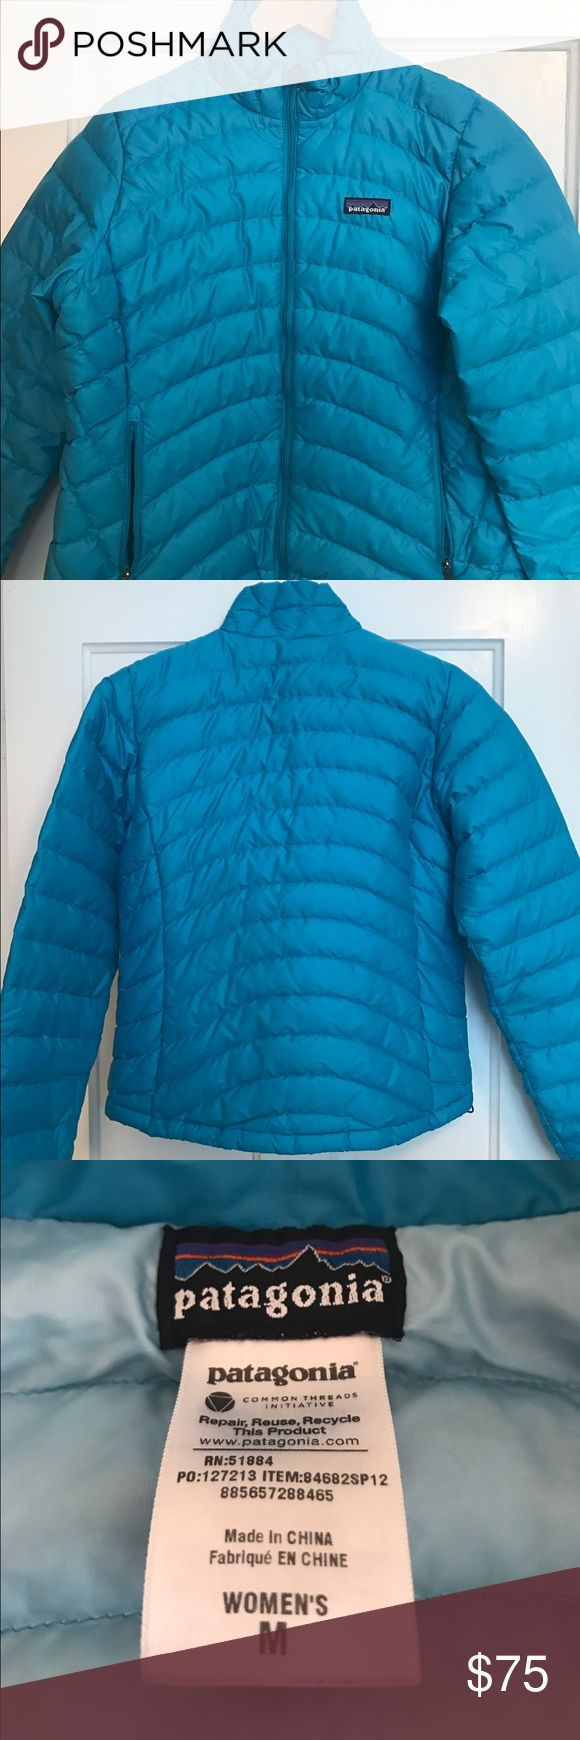 Patagonia Down Sweater Lightly used Patagonia Down Sweater. Very warm jacket in a light blue. No damage. Patagonia Jackets & Coats Puffers